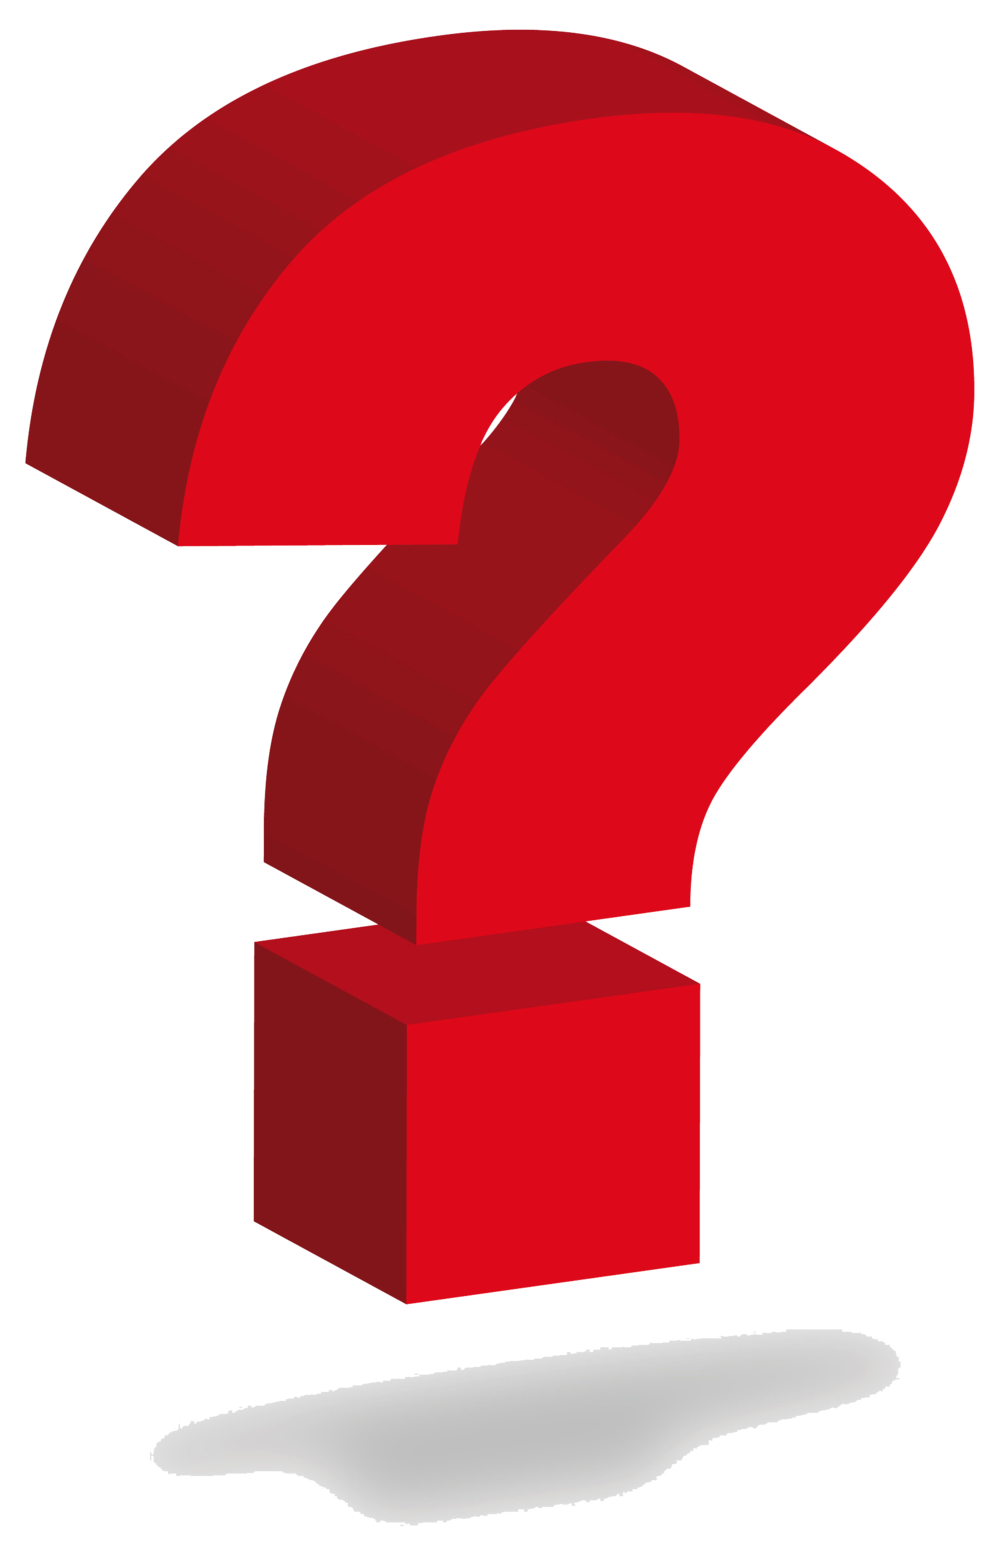 Clipart definition question. Mark png images free